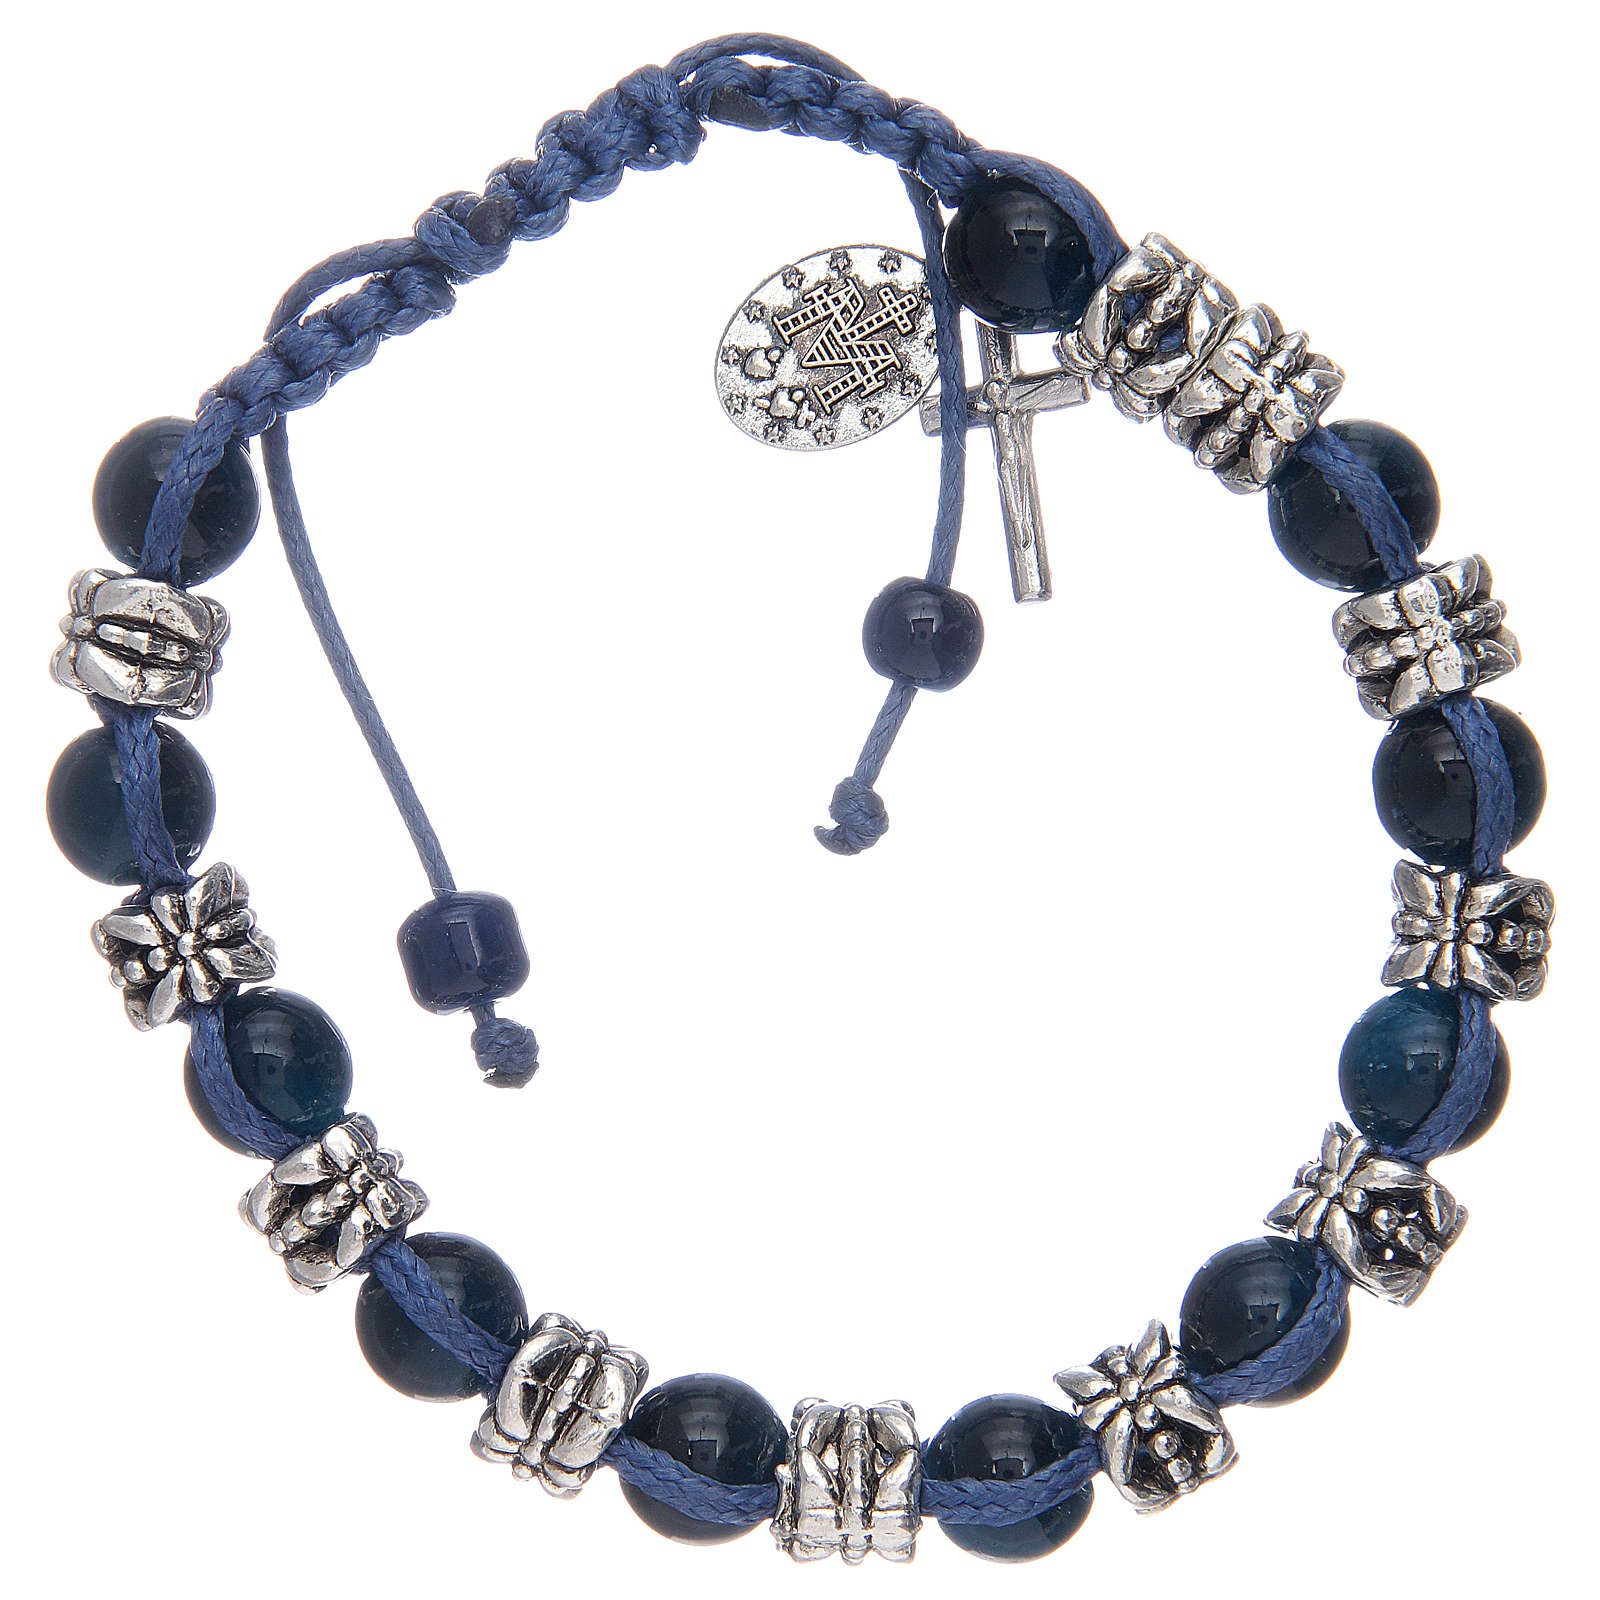 Elastic bracelet with glass grains on blue cord 4